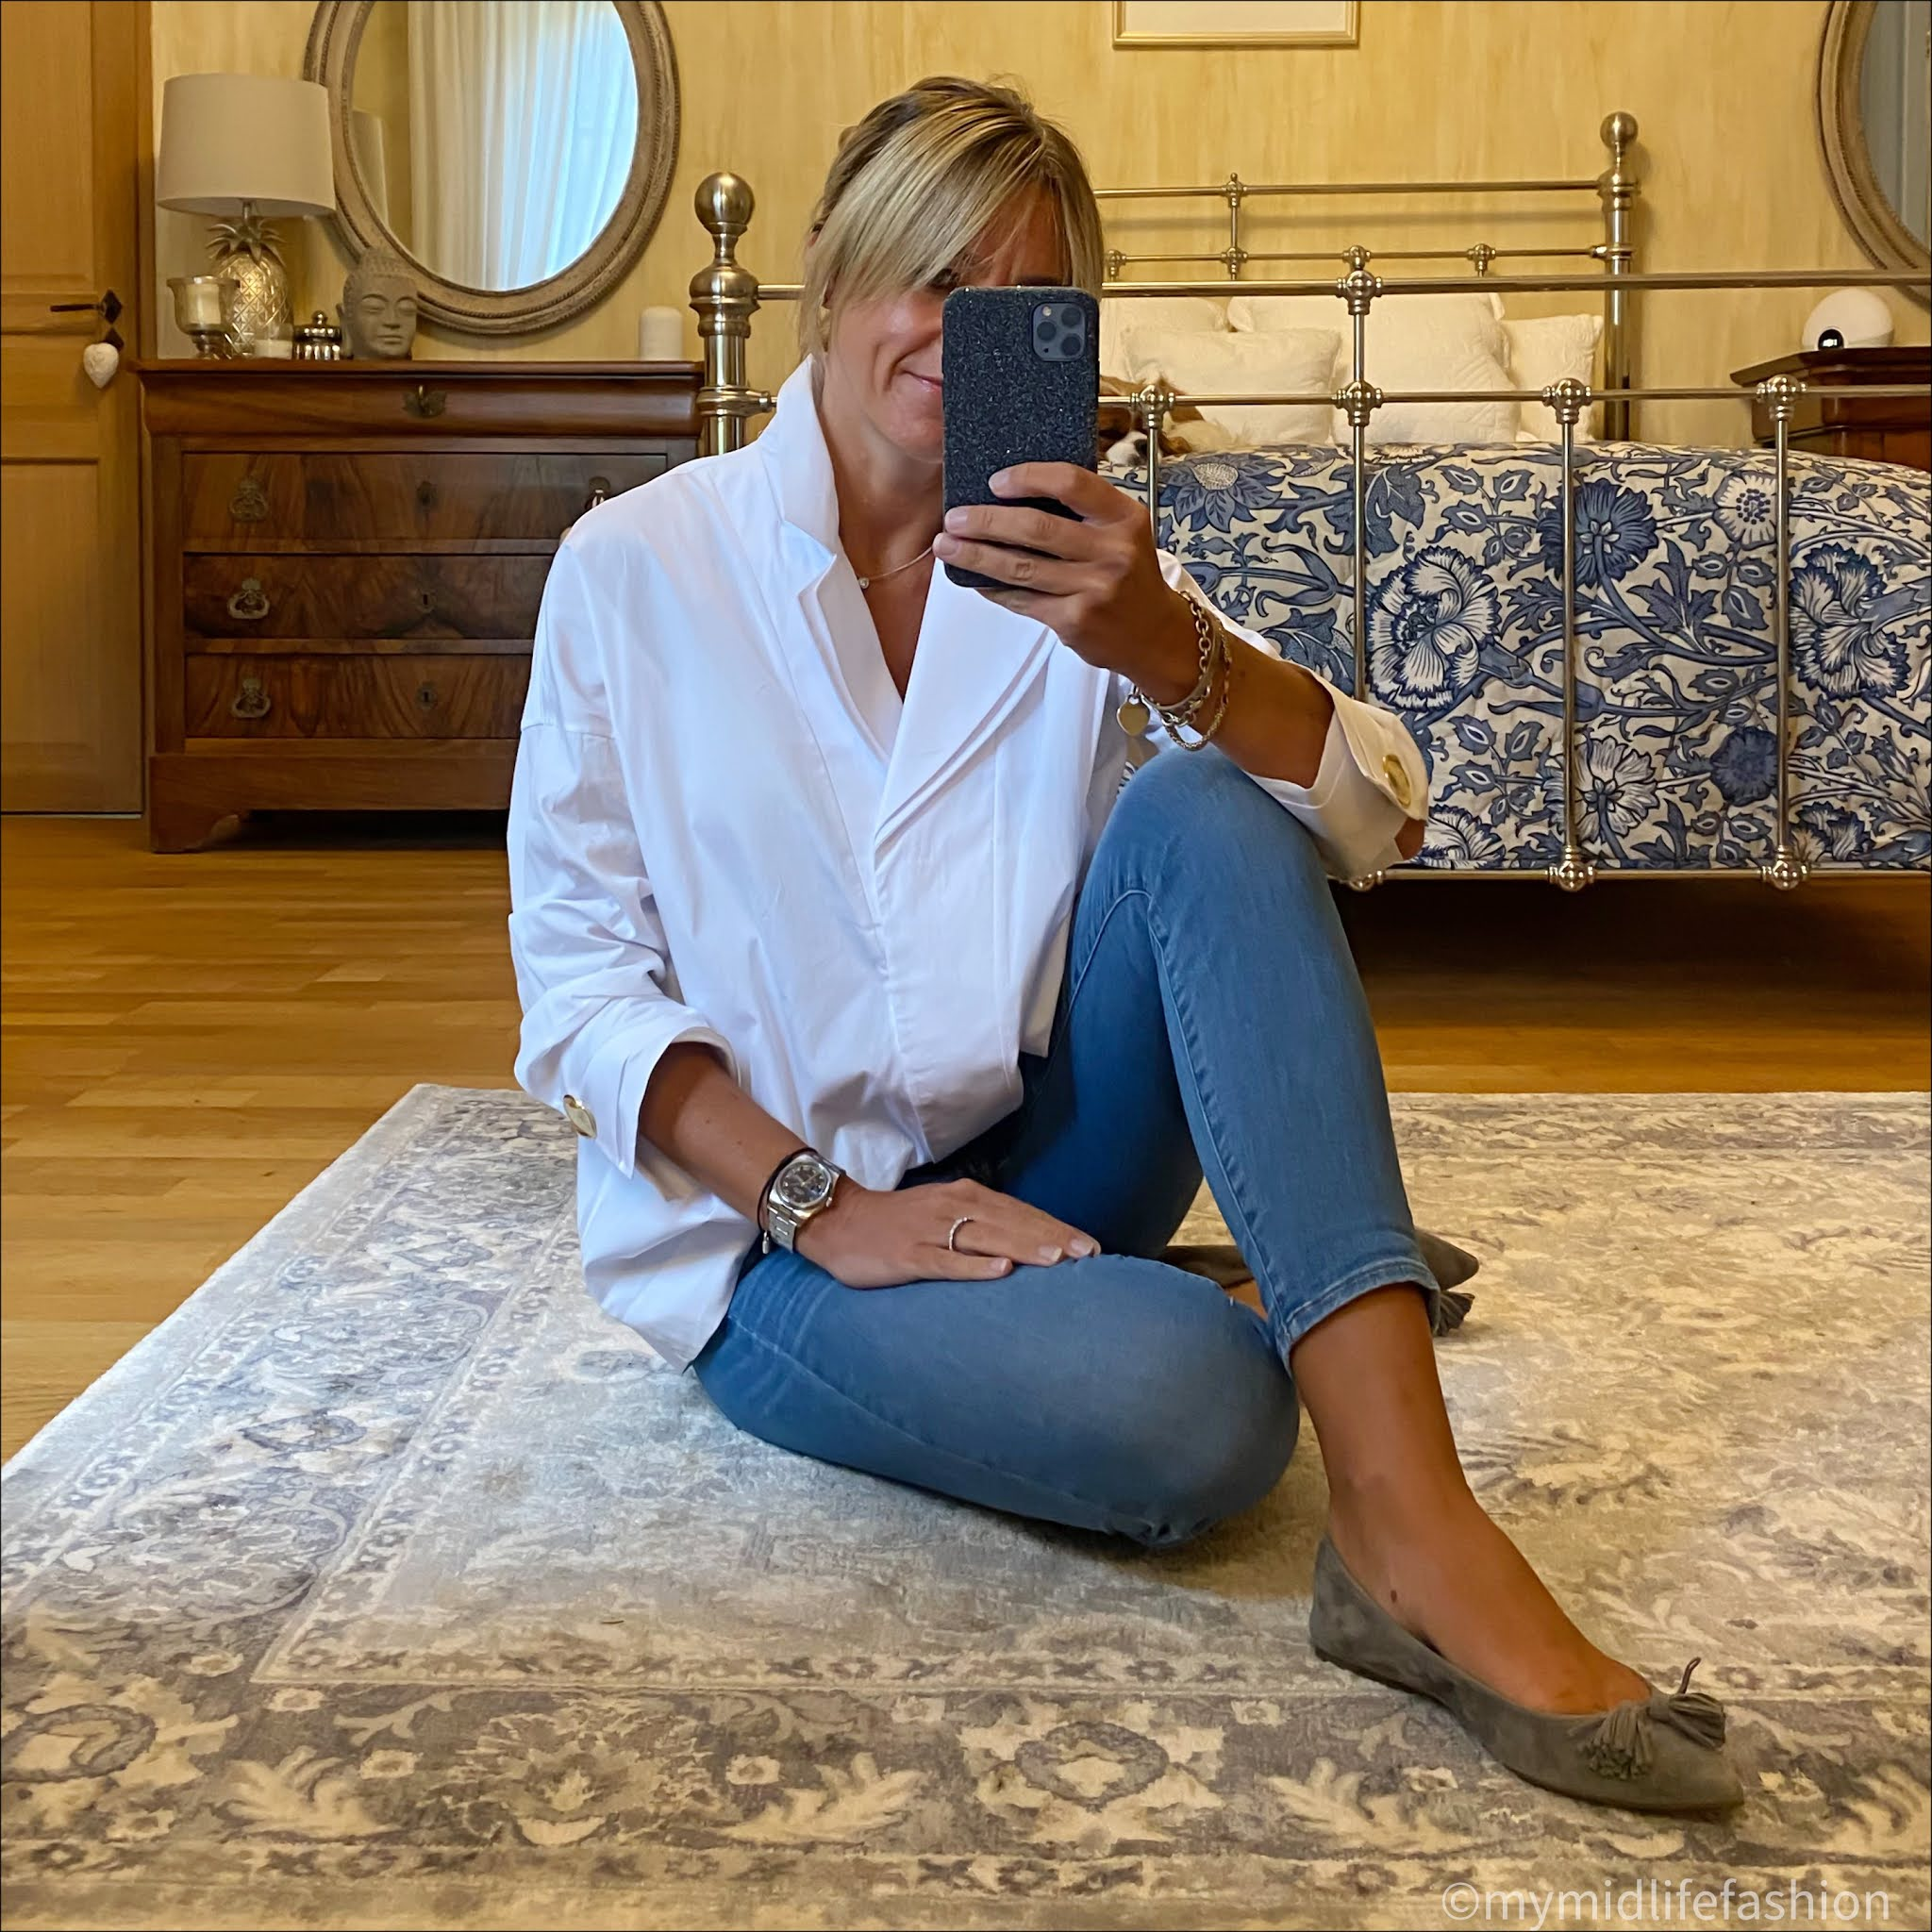 my midlife fashion, uterque oversized single breasted white shirt, j crew 8 inch toothpick jeans, j crew suede tassel ballet flats